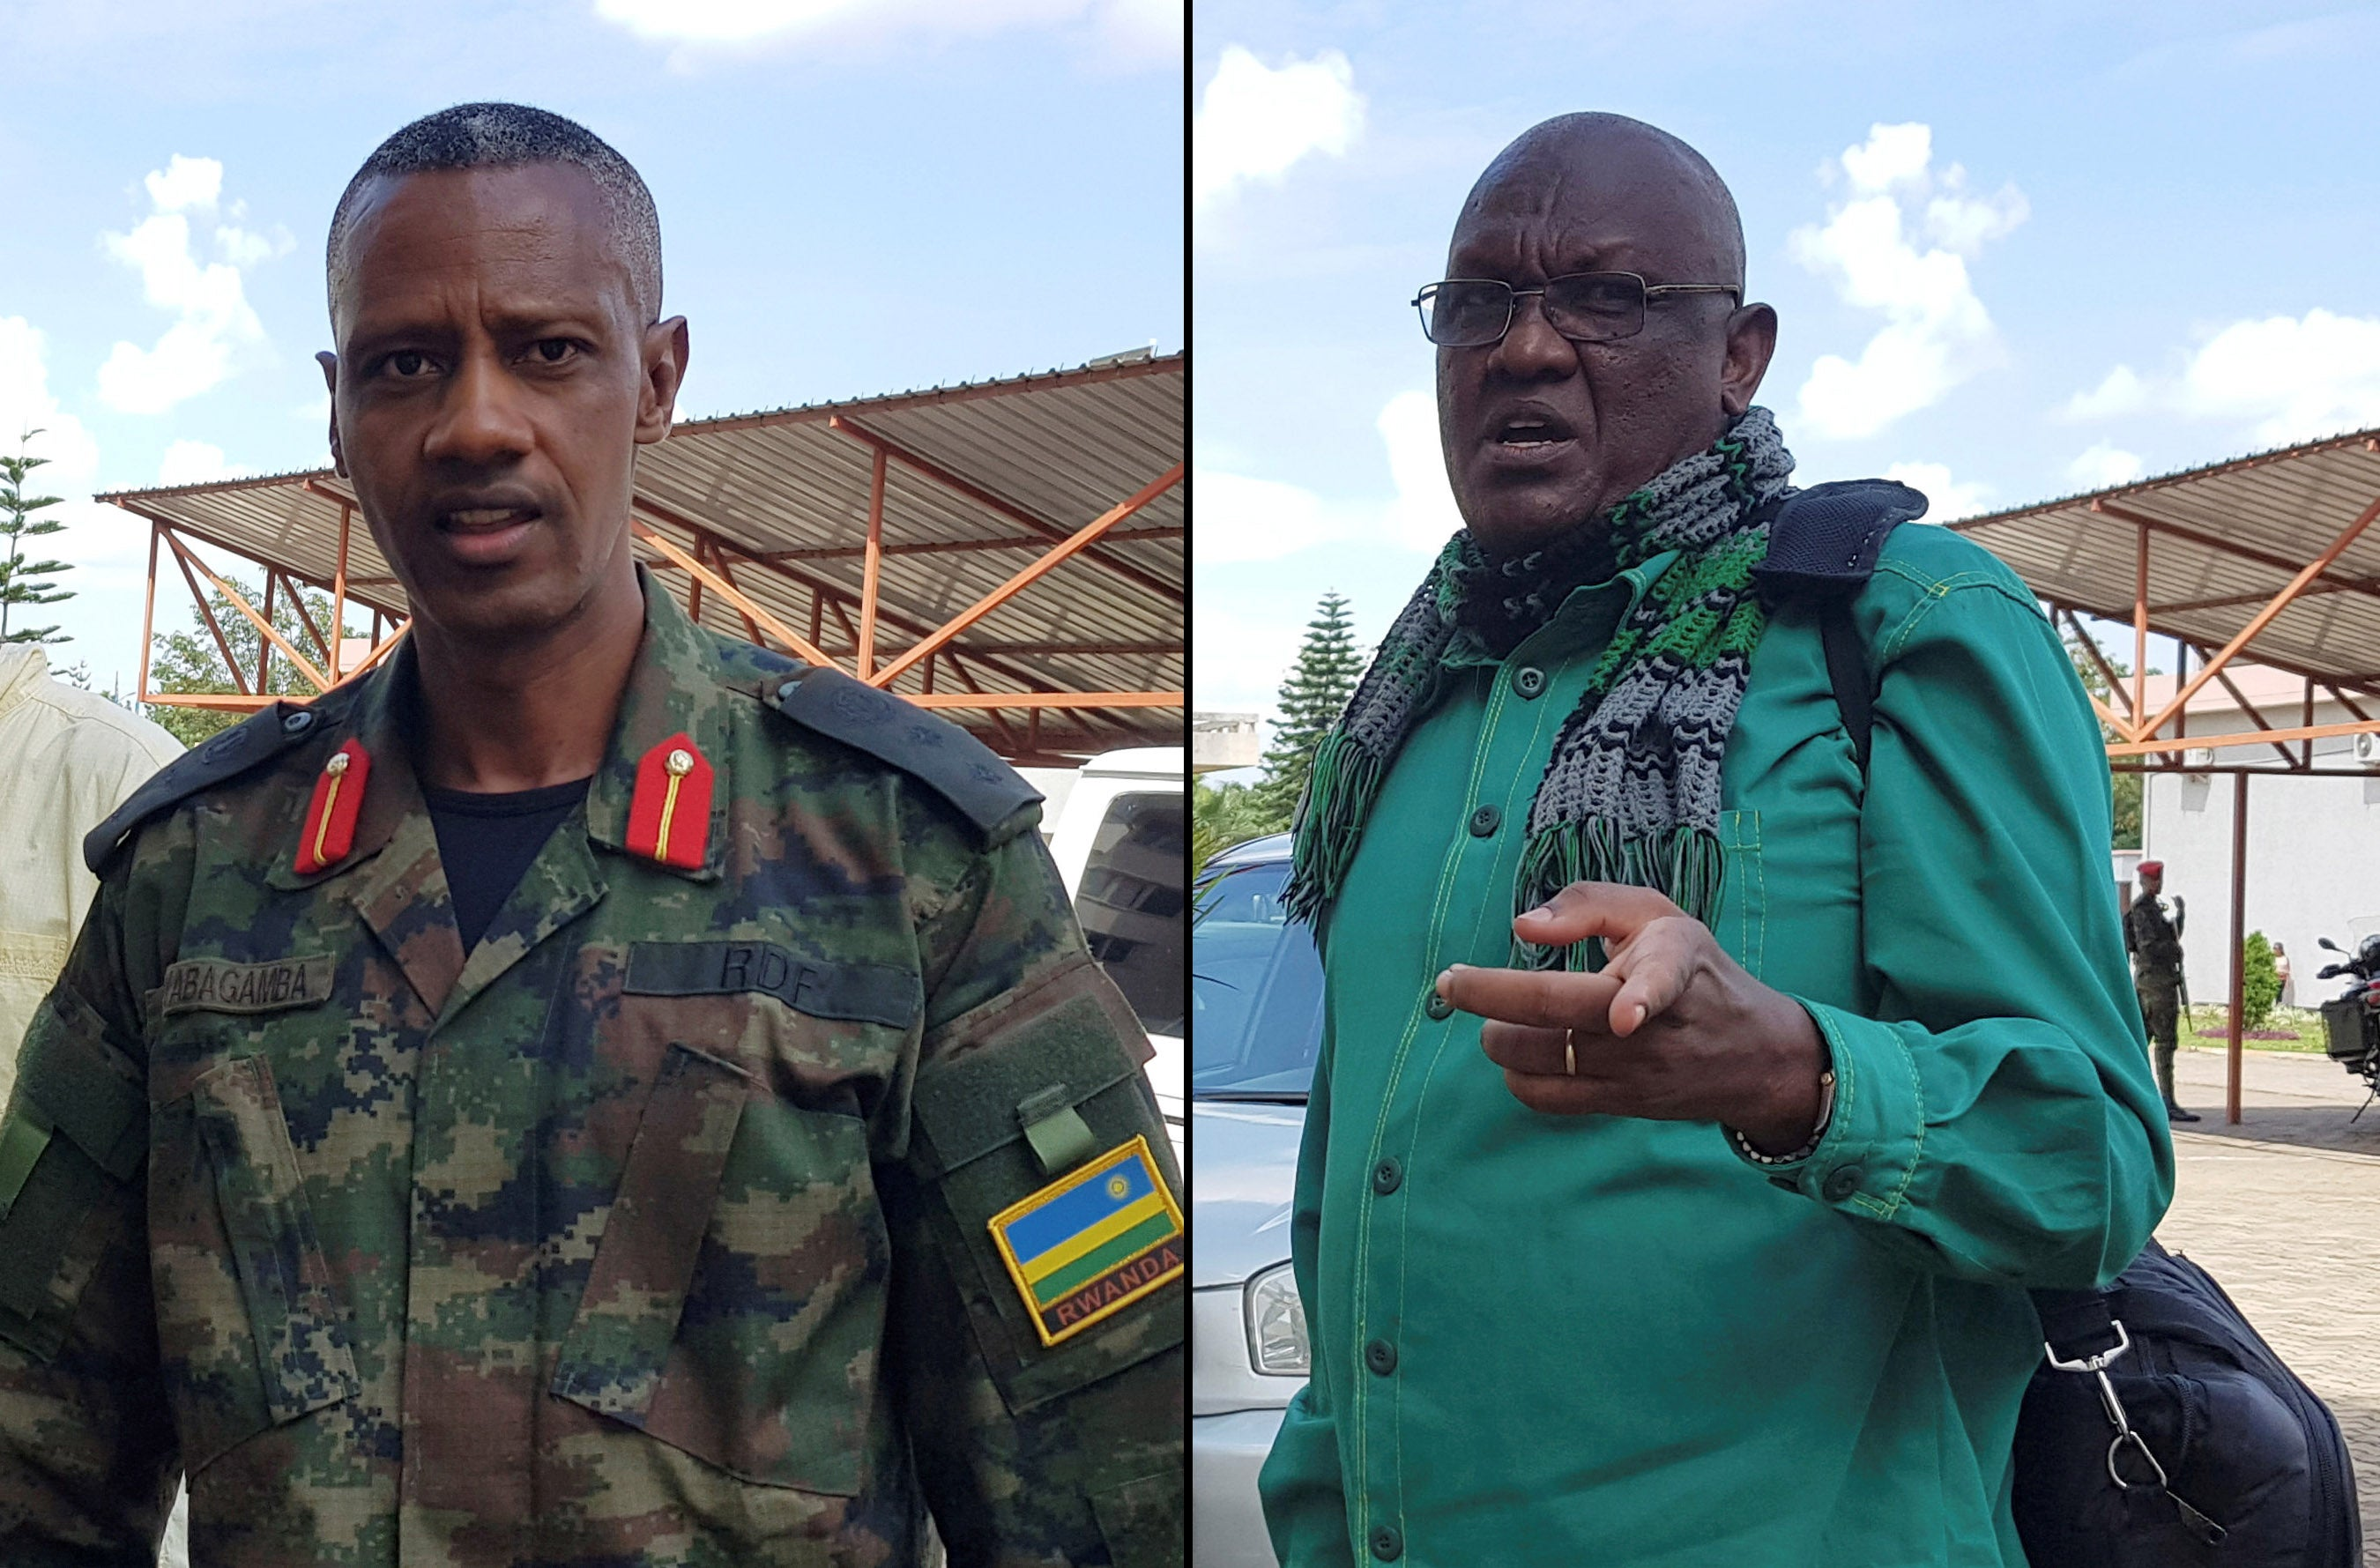 Colonel Tom Byabagamba (left) and retired Brigadier General Frank Rusagara (right) arrive at the court to appeal their 2016 conviction on charges including tarnishing the government's image and inciting insurrection, in Kigali, Rwanda, on December 27, 201